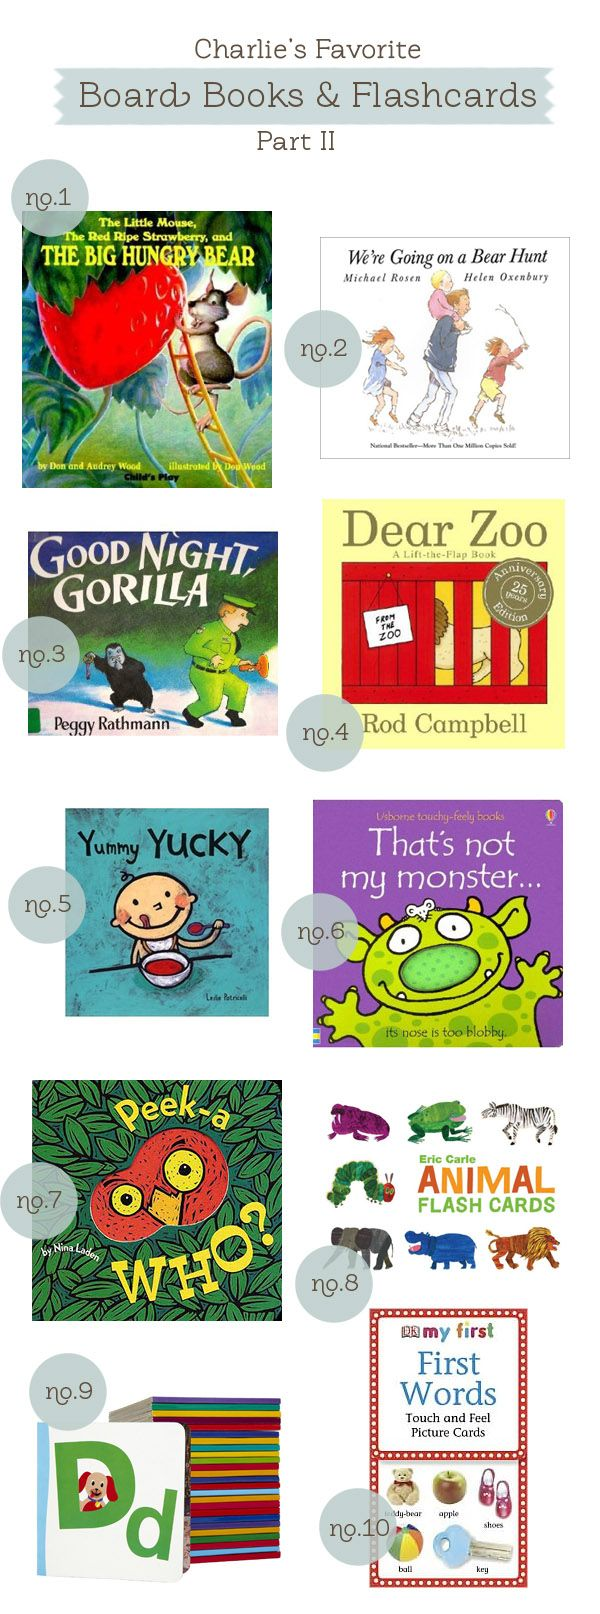 charlie's favorite board books and flashcards